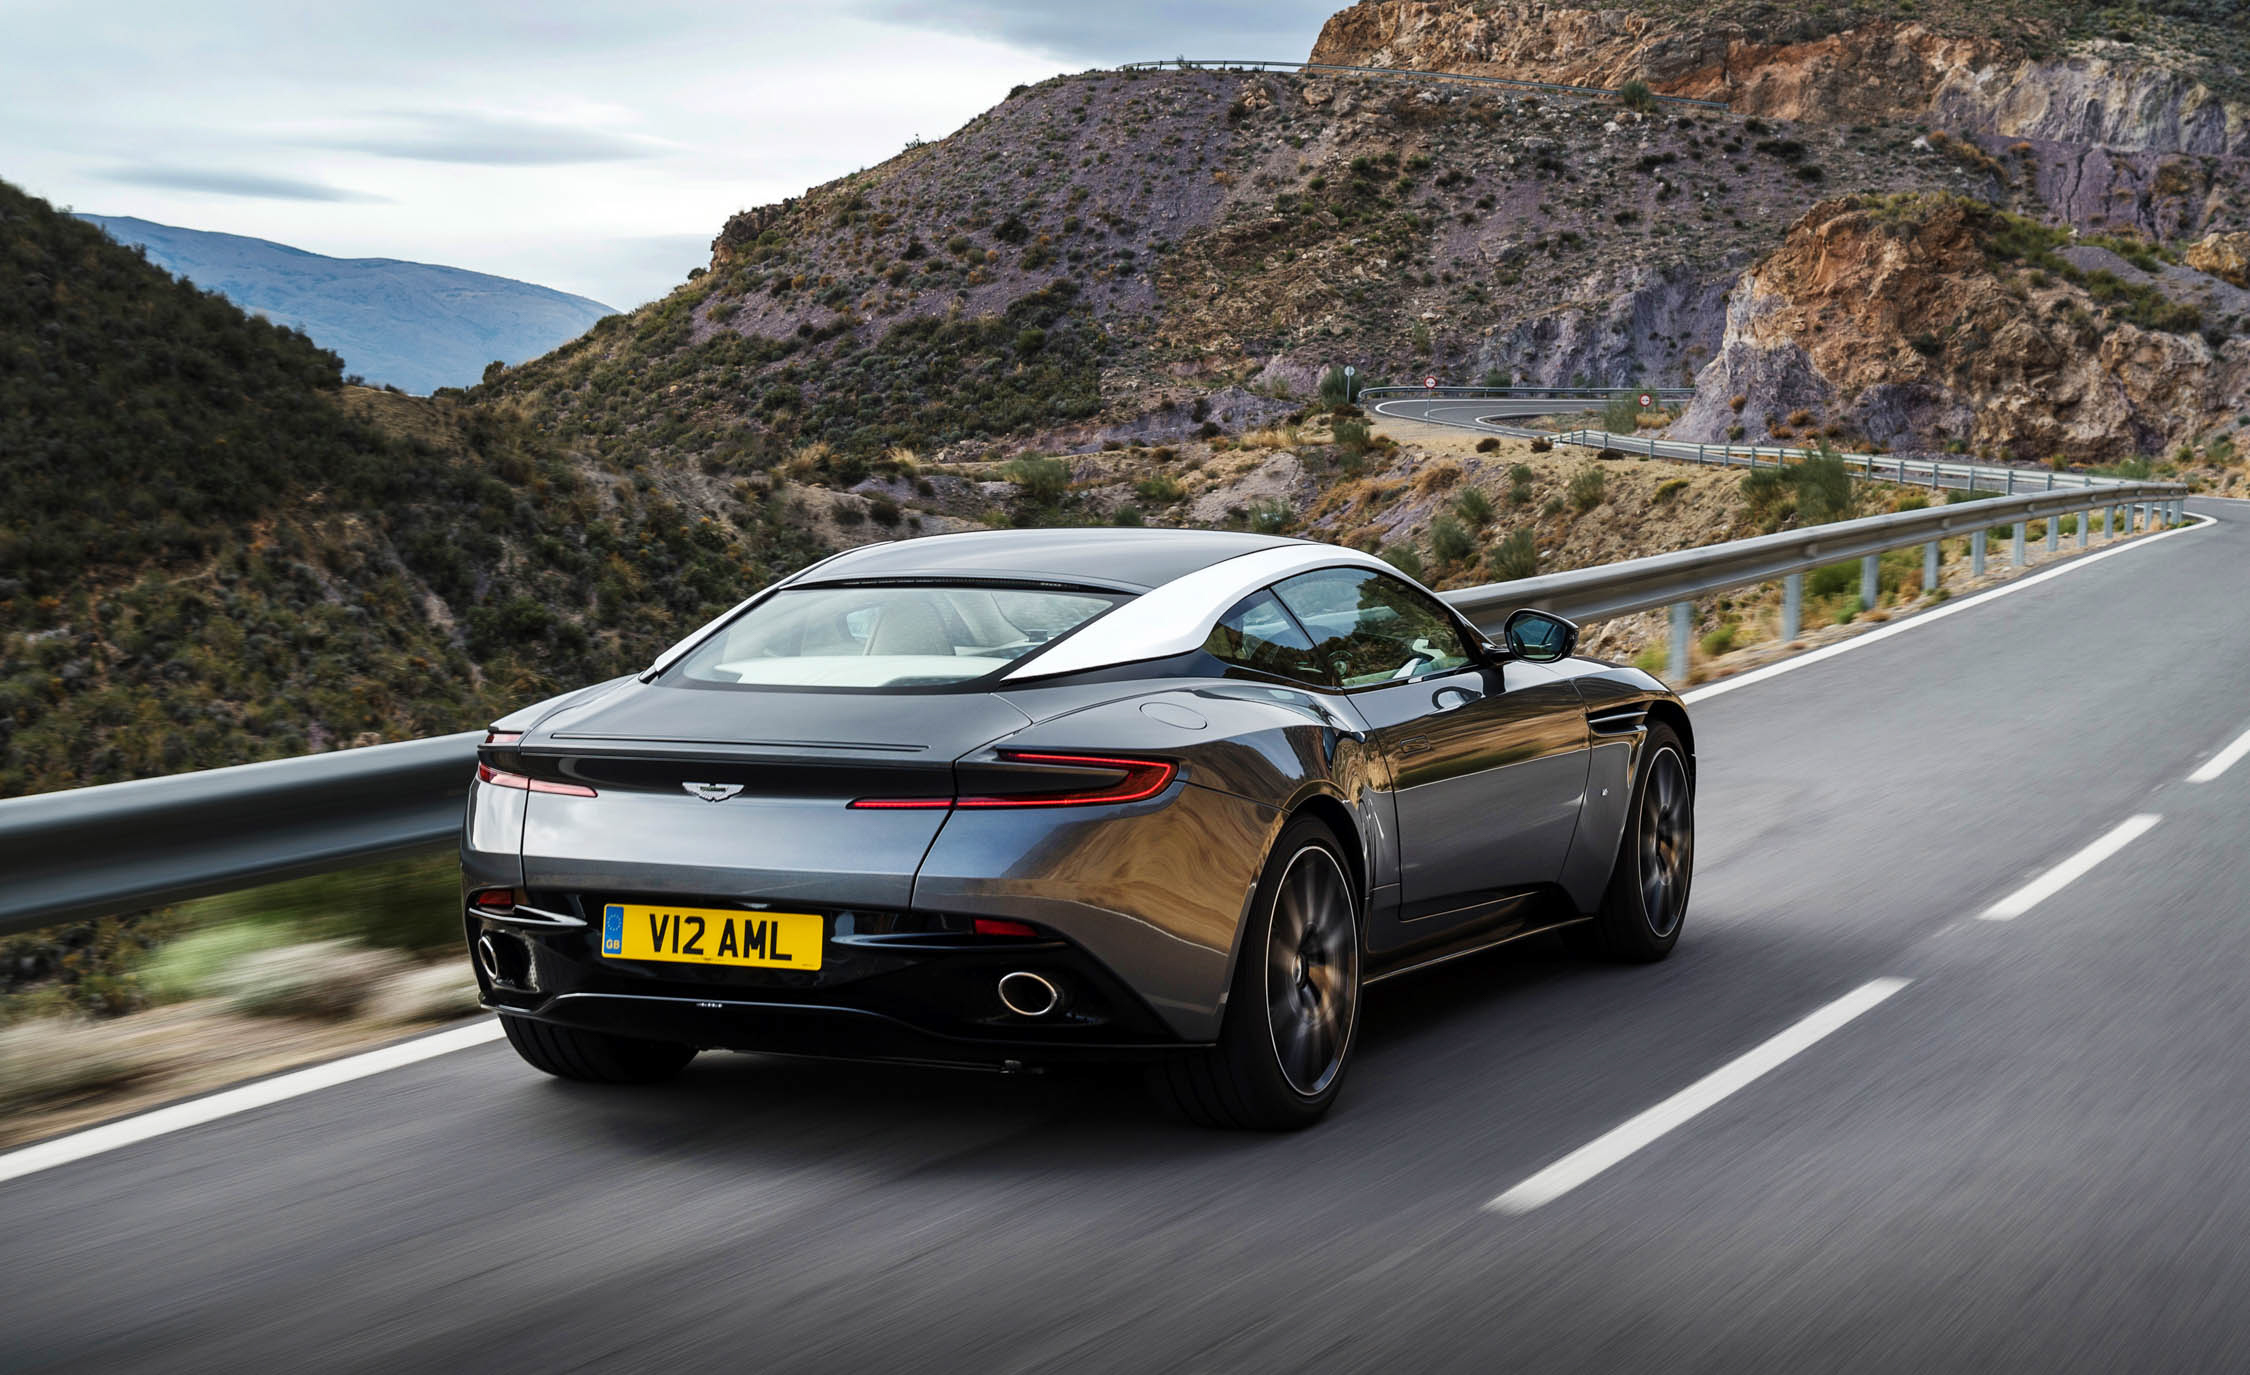 2017 Aston Martin Db11 Test Drive Preview (Photo 16 of 22)